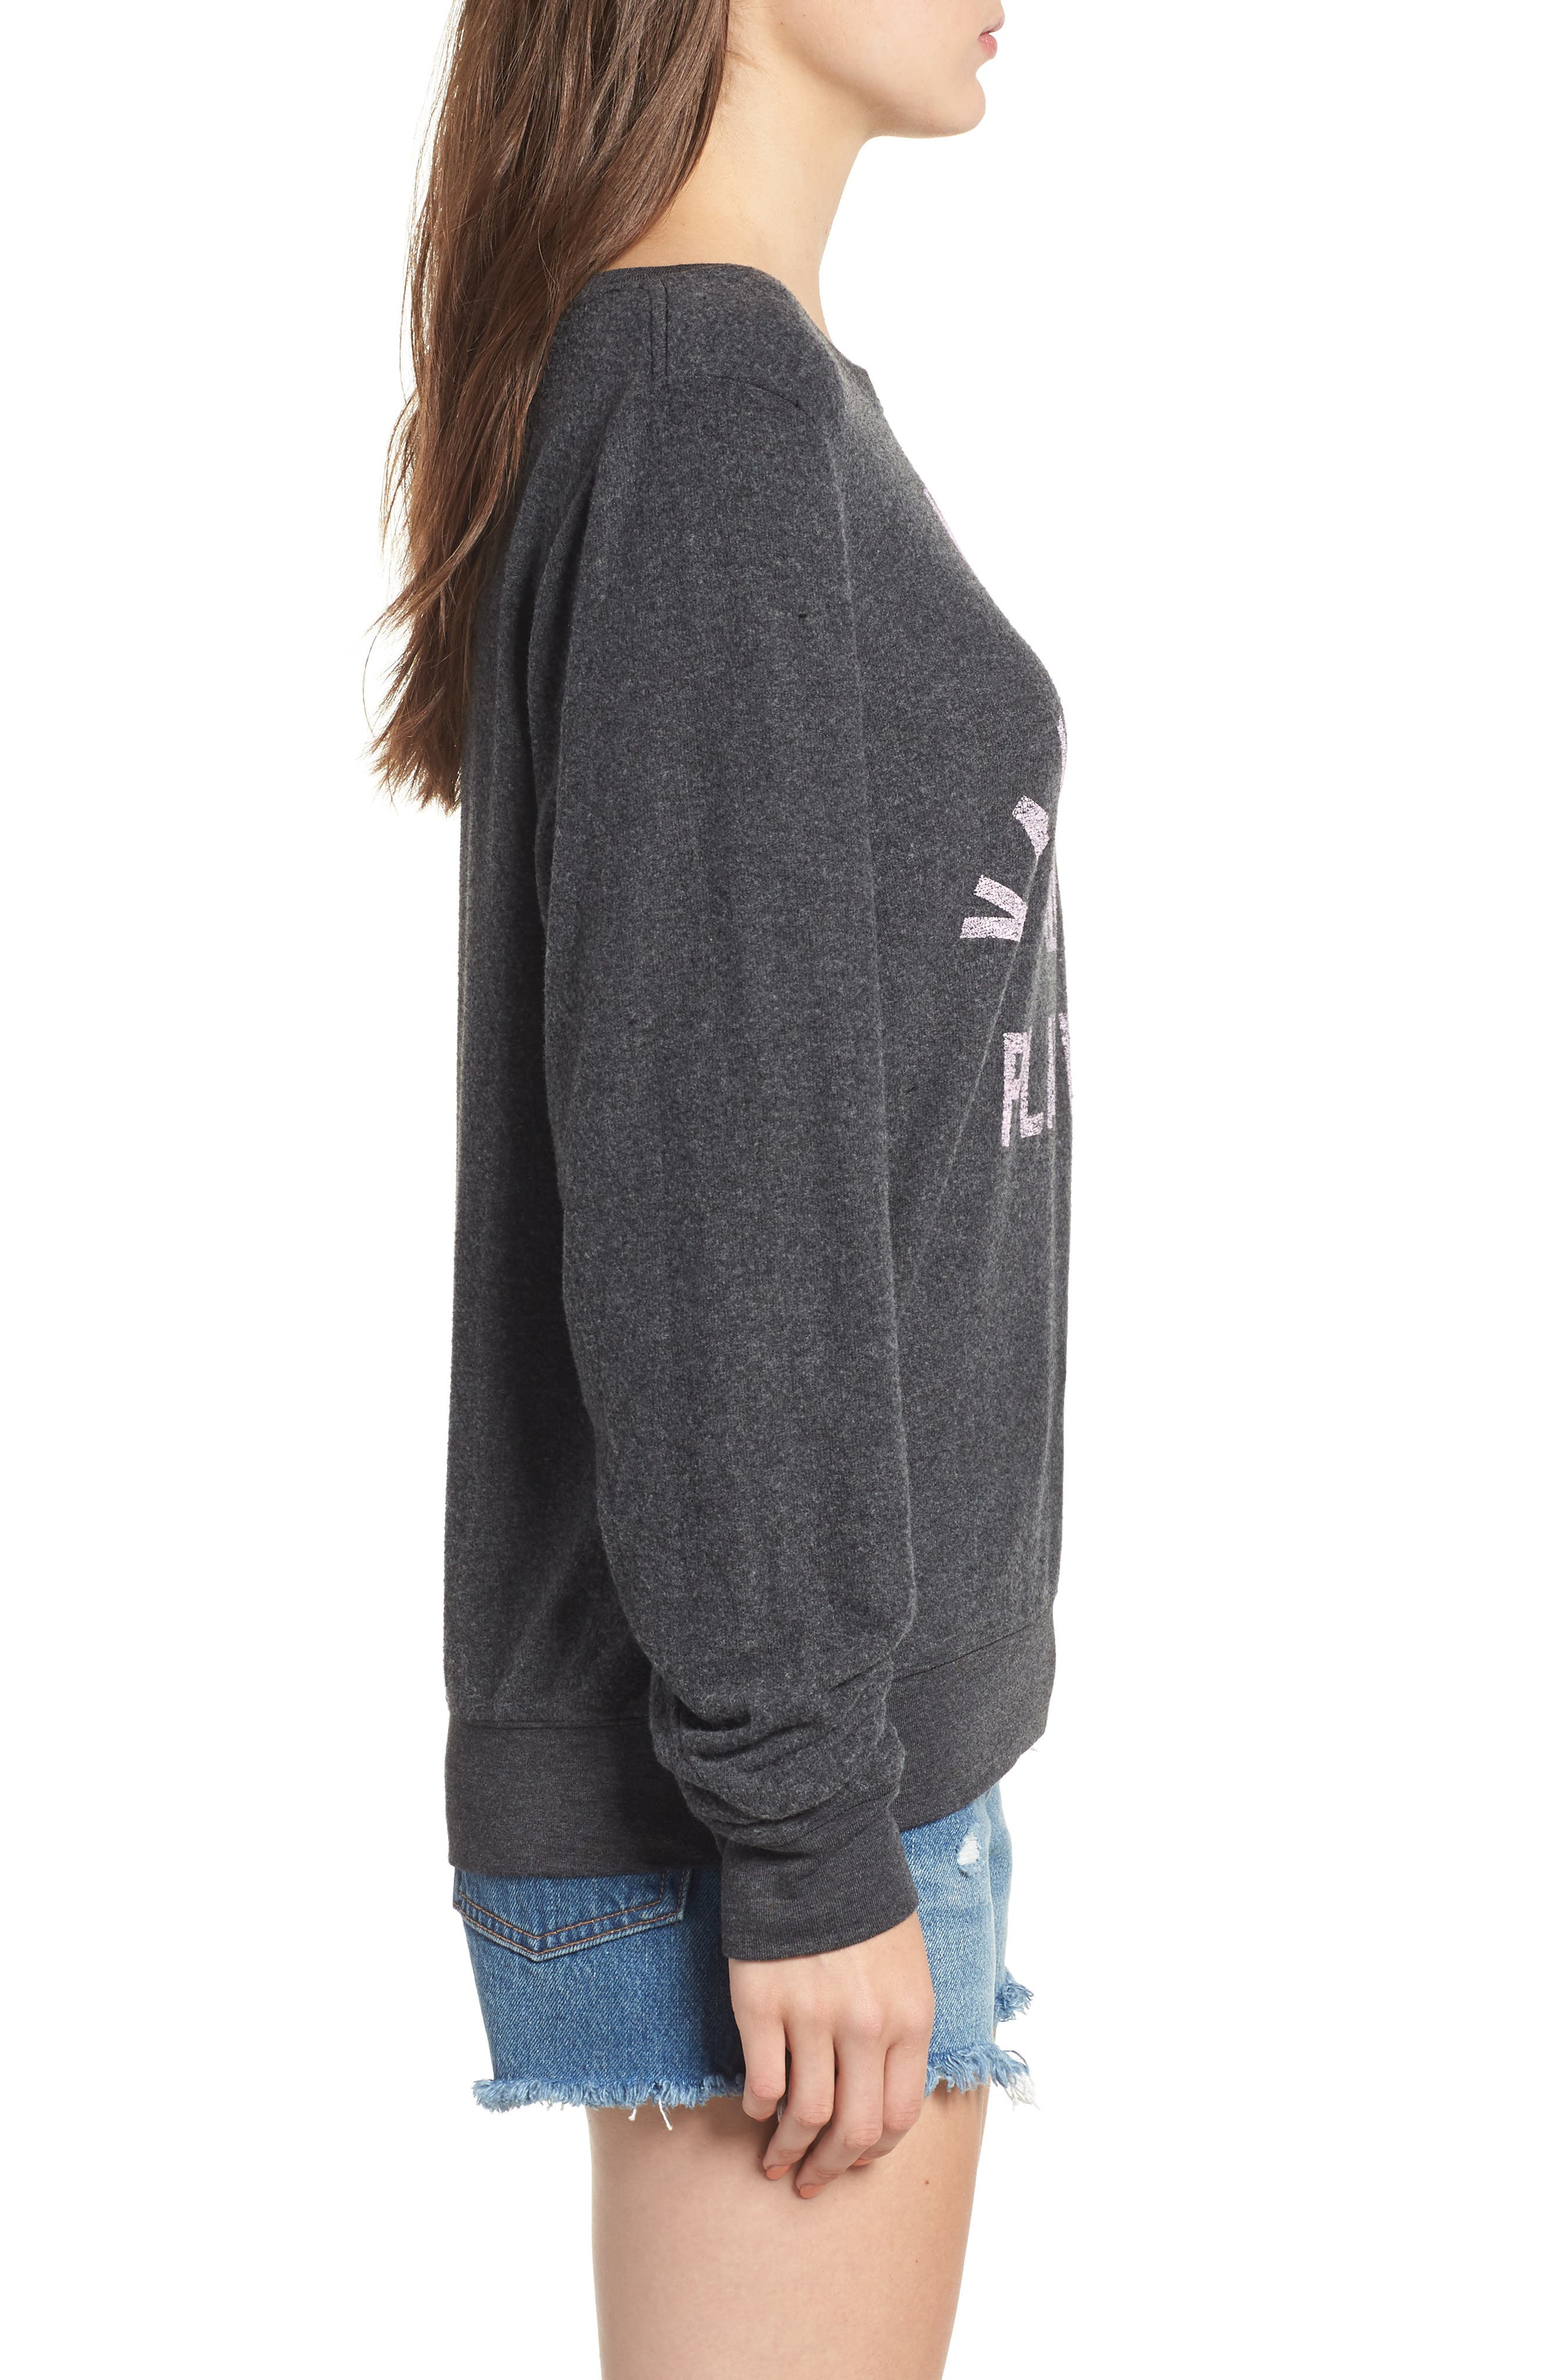 Most Valuable Player Baggy Beach Jumper Sweatshirt,                             Alternate thumbnail 3, color,                             002